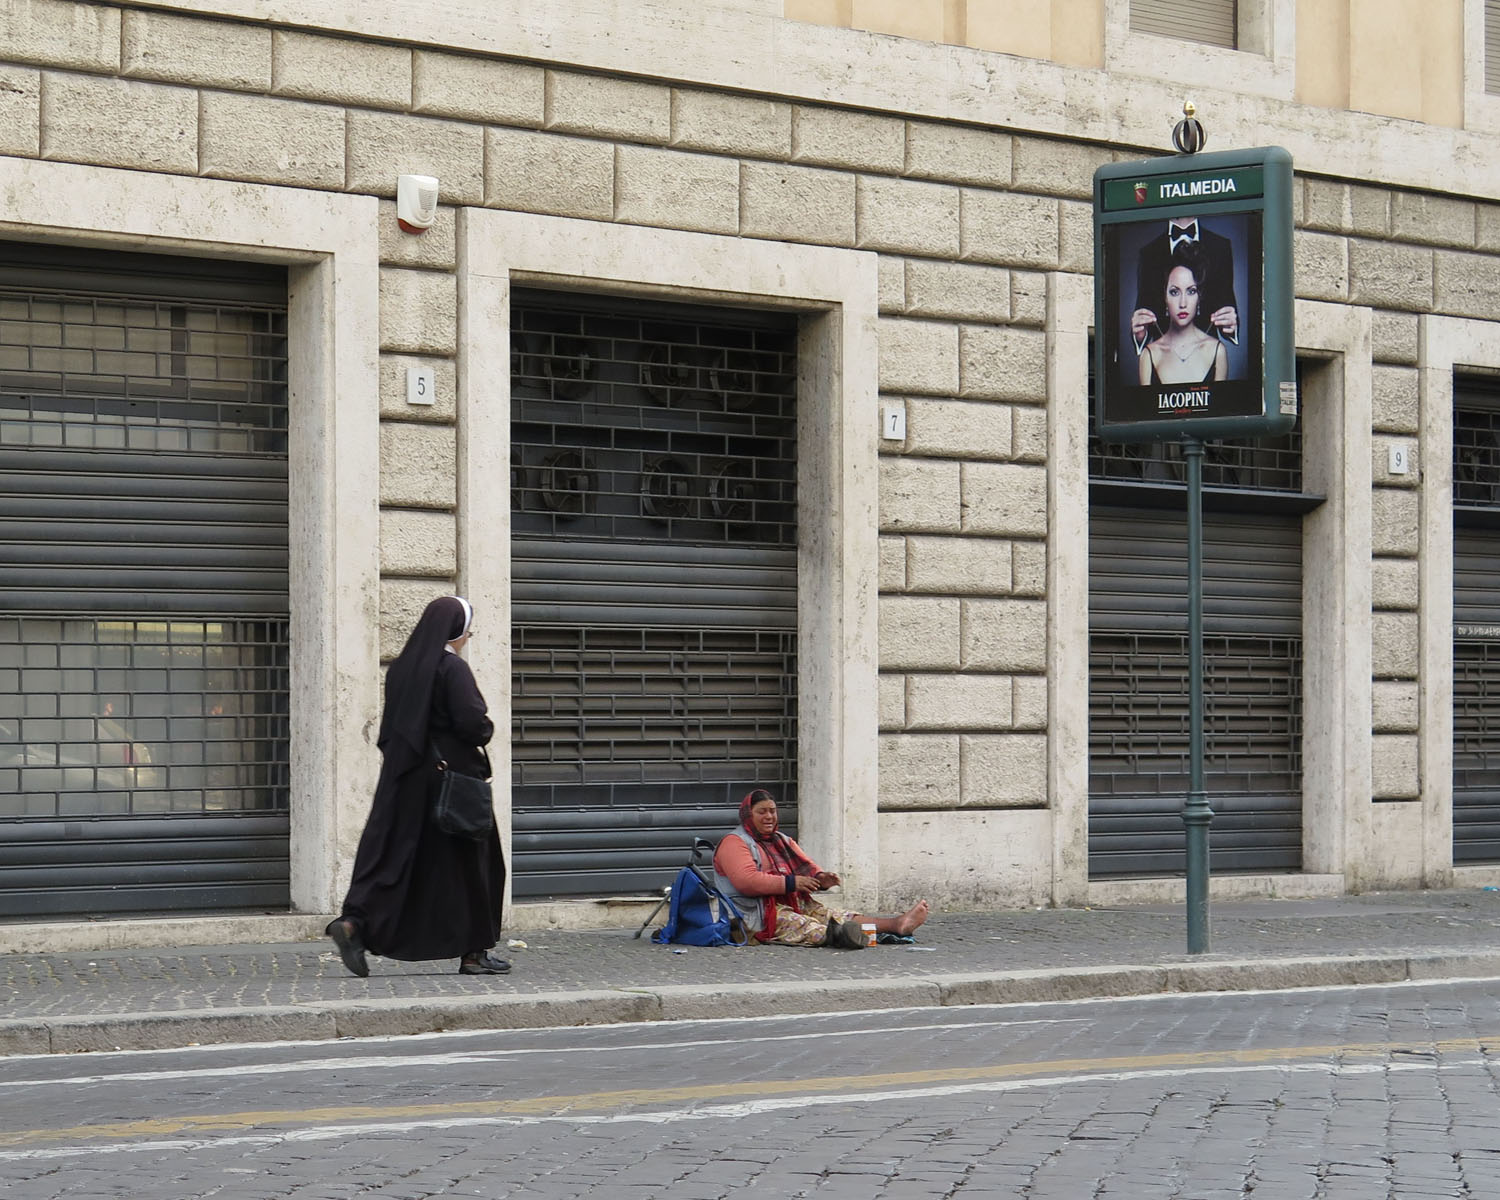 Italy-Rome-Street-Scenes-Nun-Begging-Woman